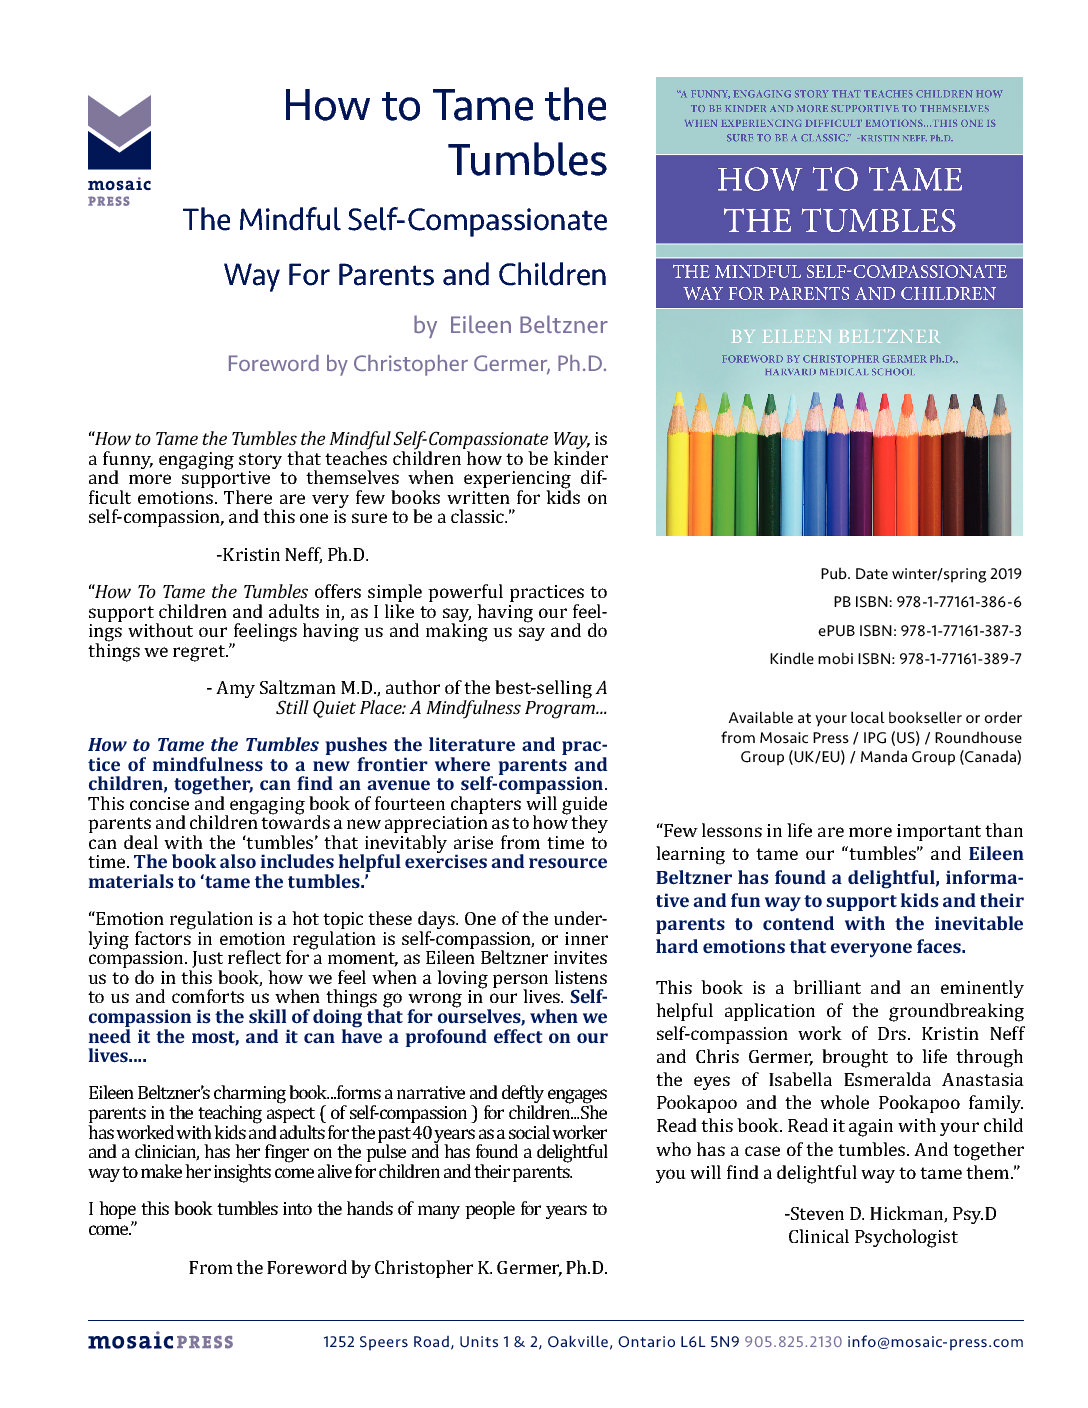 Books by Eileen – MSC – Mindful Self-Compassion Training and